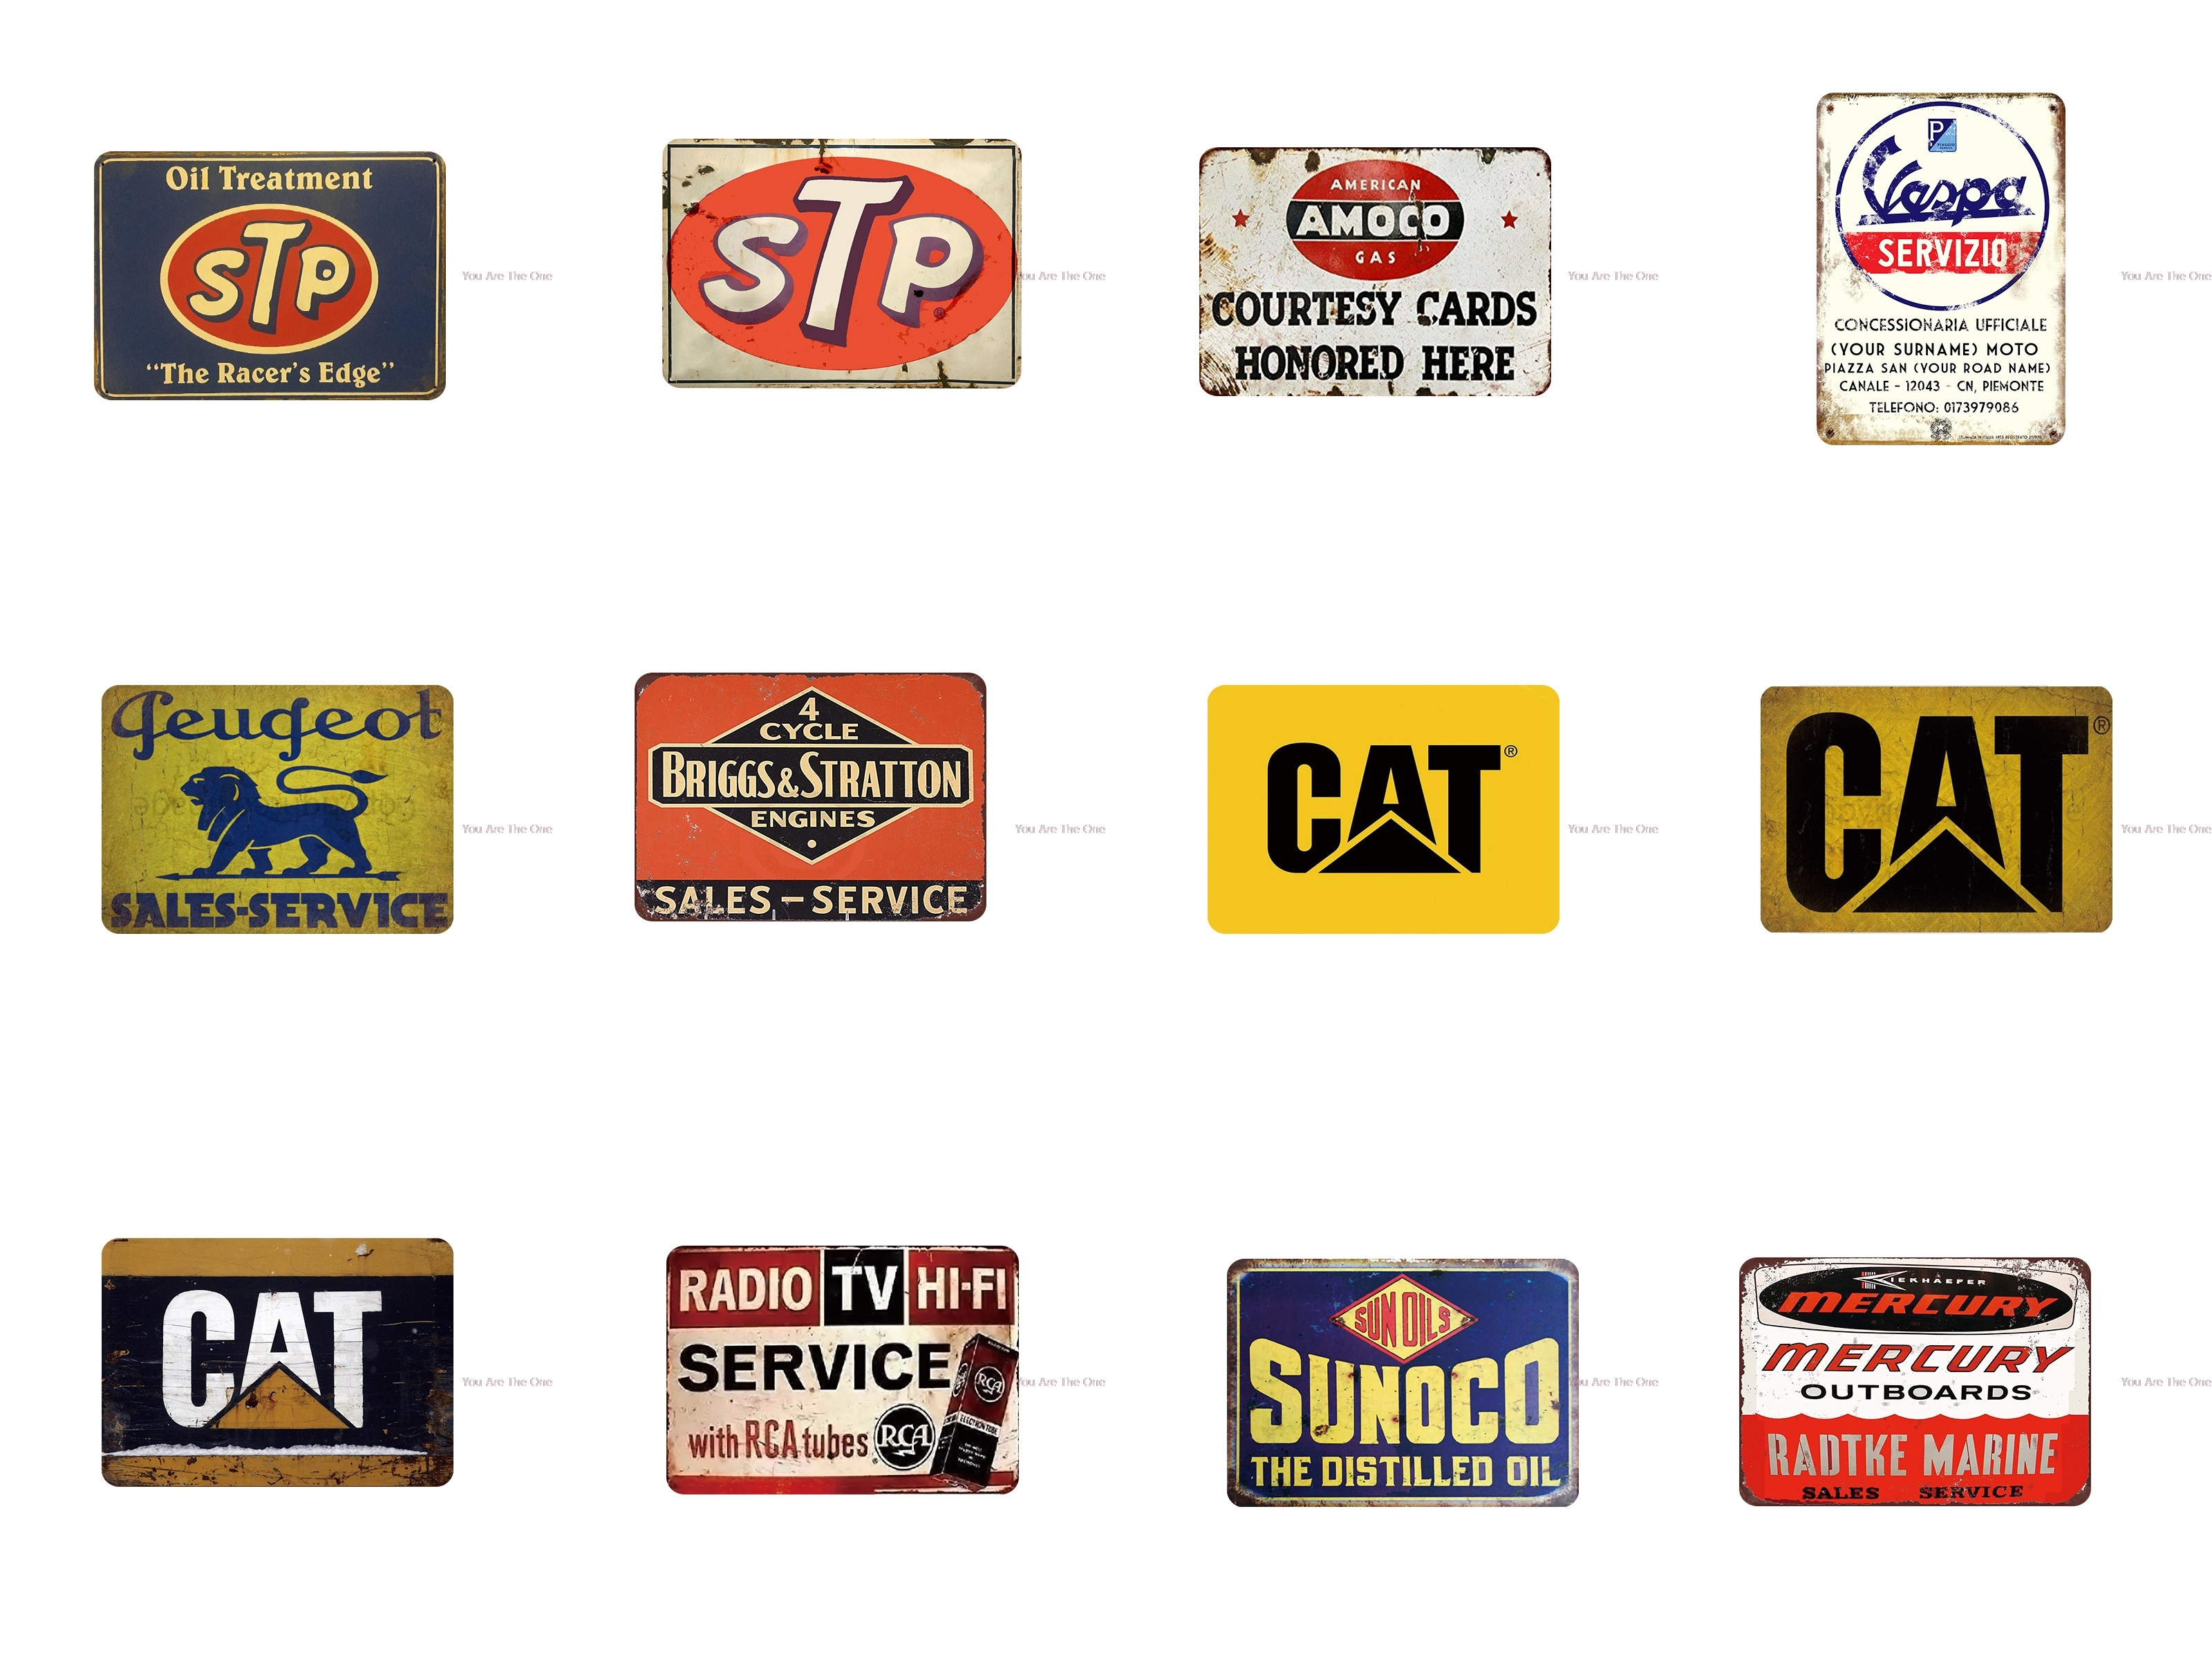 Shabby Metal Tin Signs Stp Oil Treatment motor oil Gat Vintage Garage Plaque Iron Painting For Oils and Gas Station Wall Decor